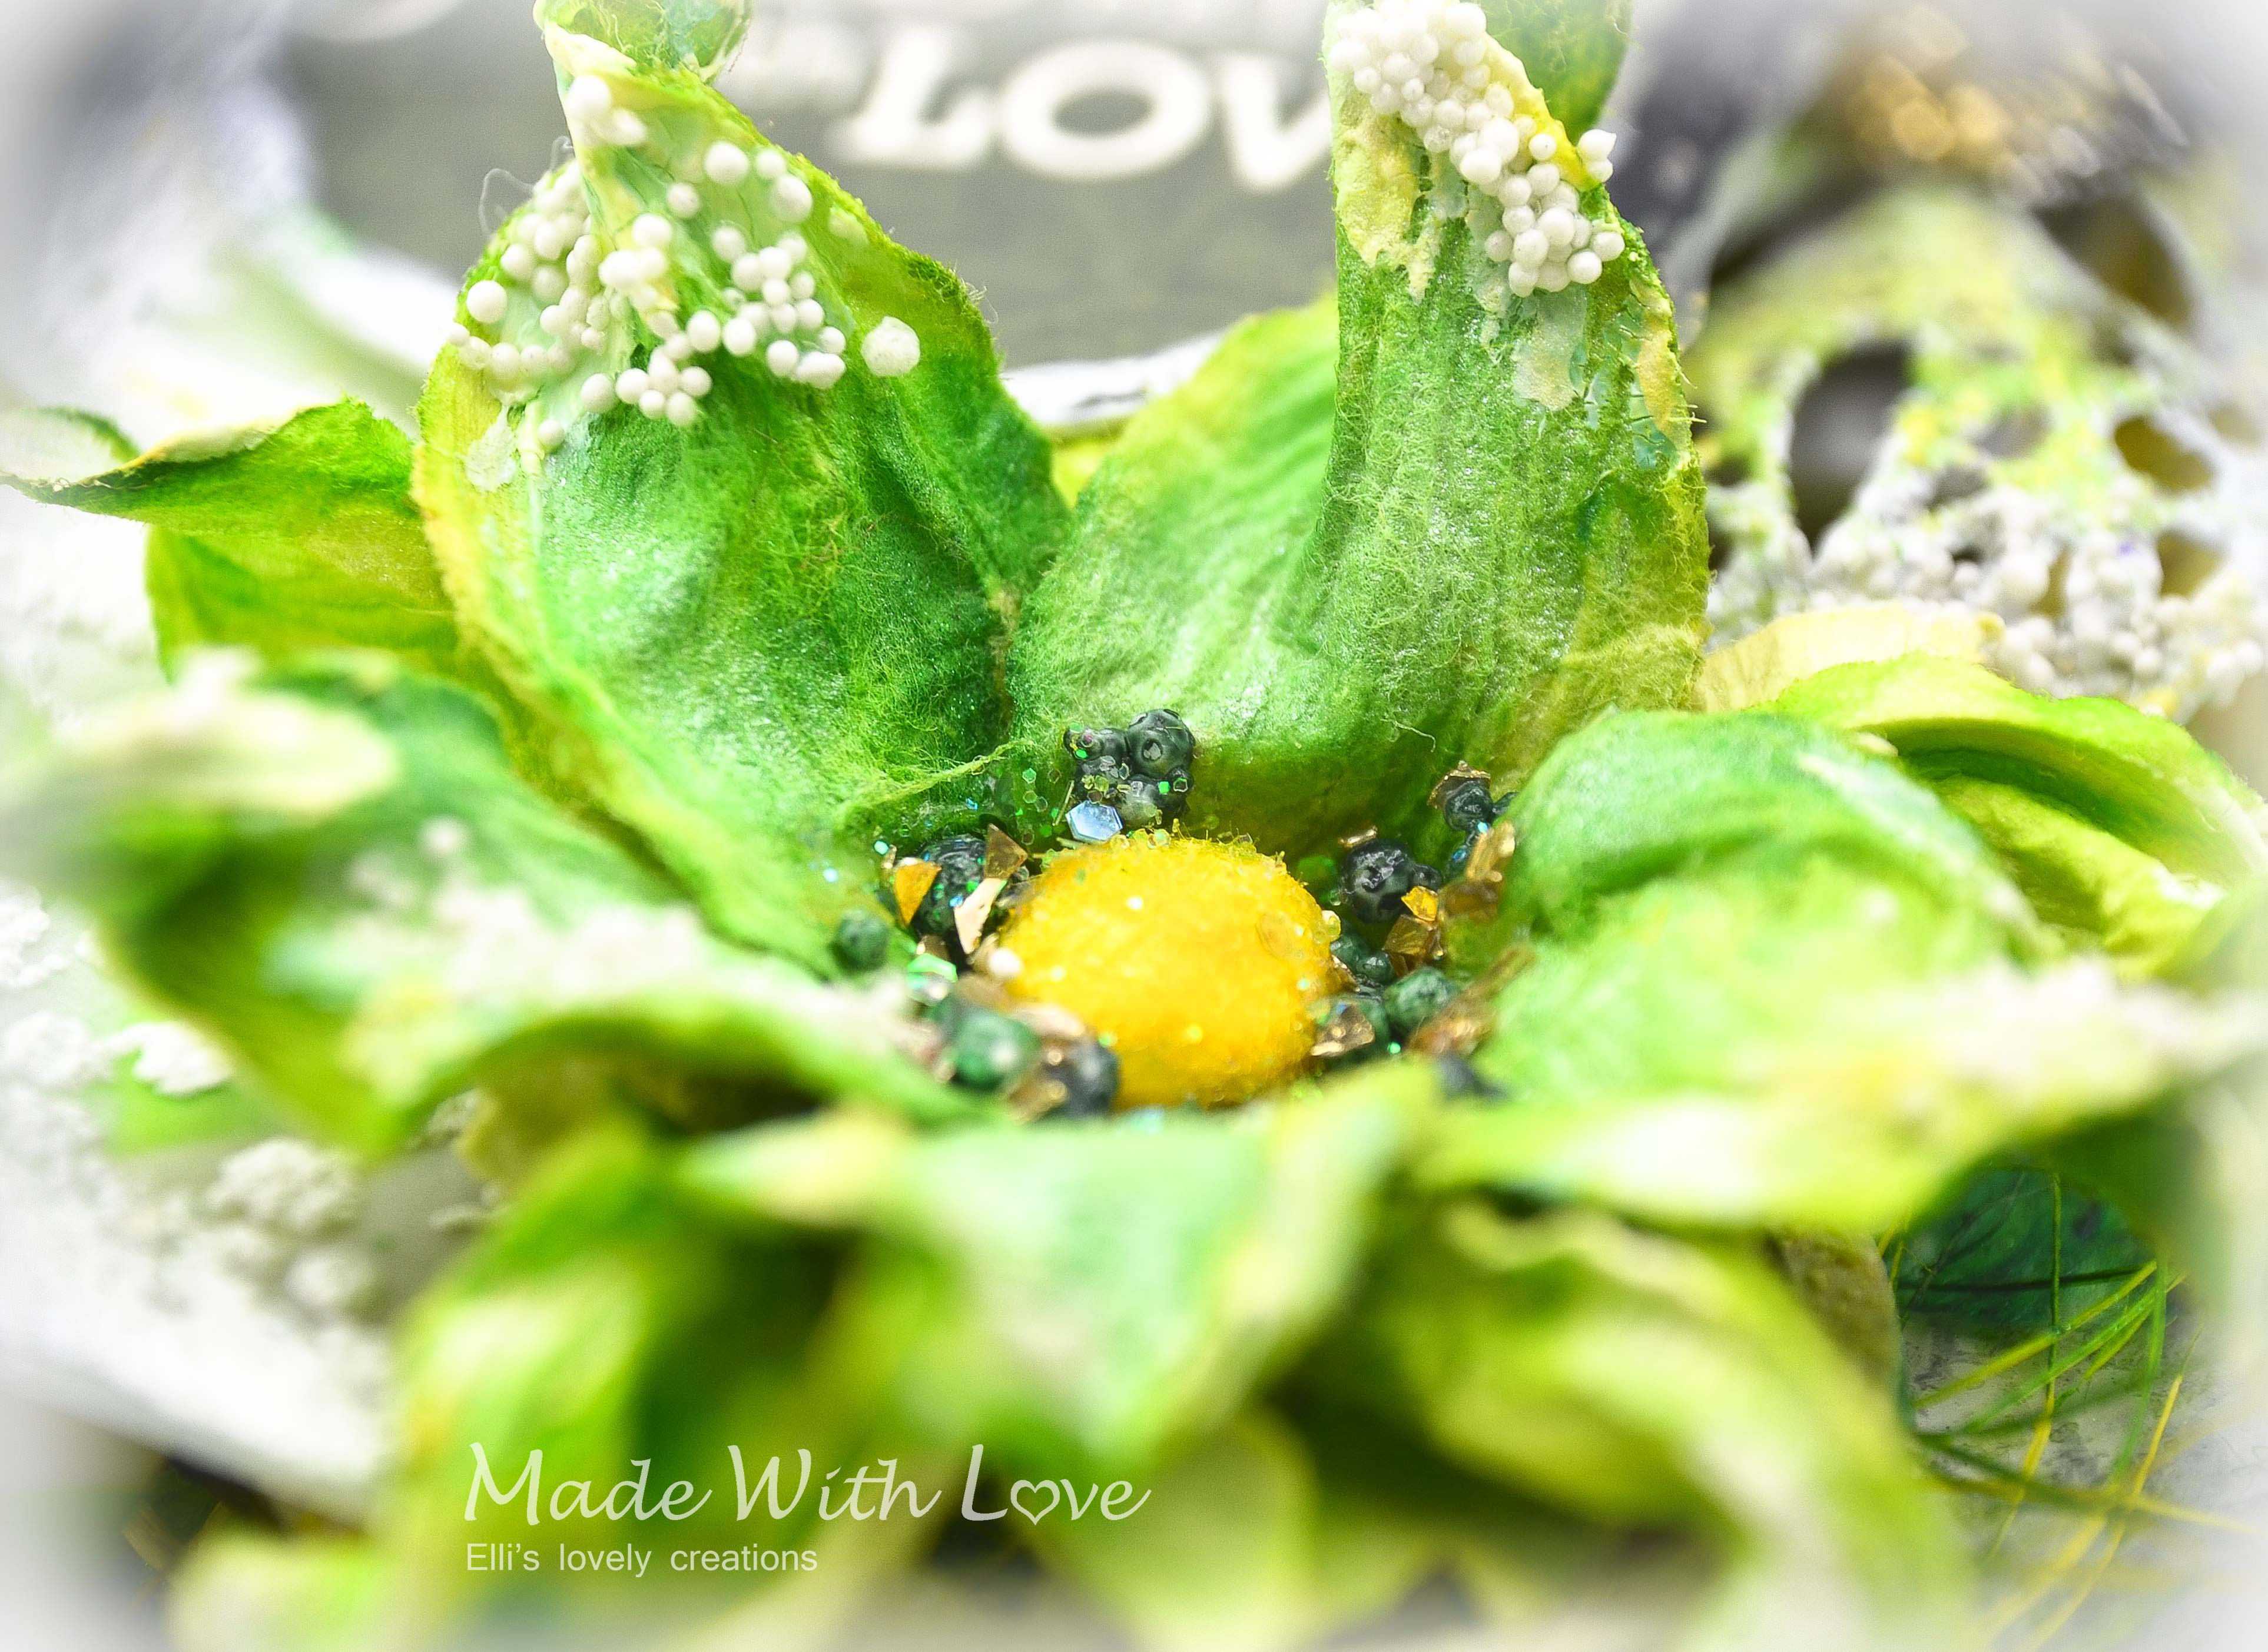 Mixed Media Spring Clear Acetate Tag Grow With Love